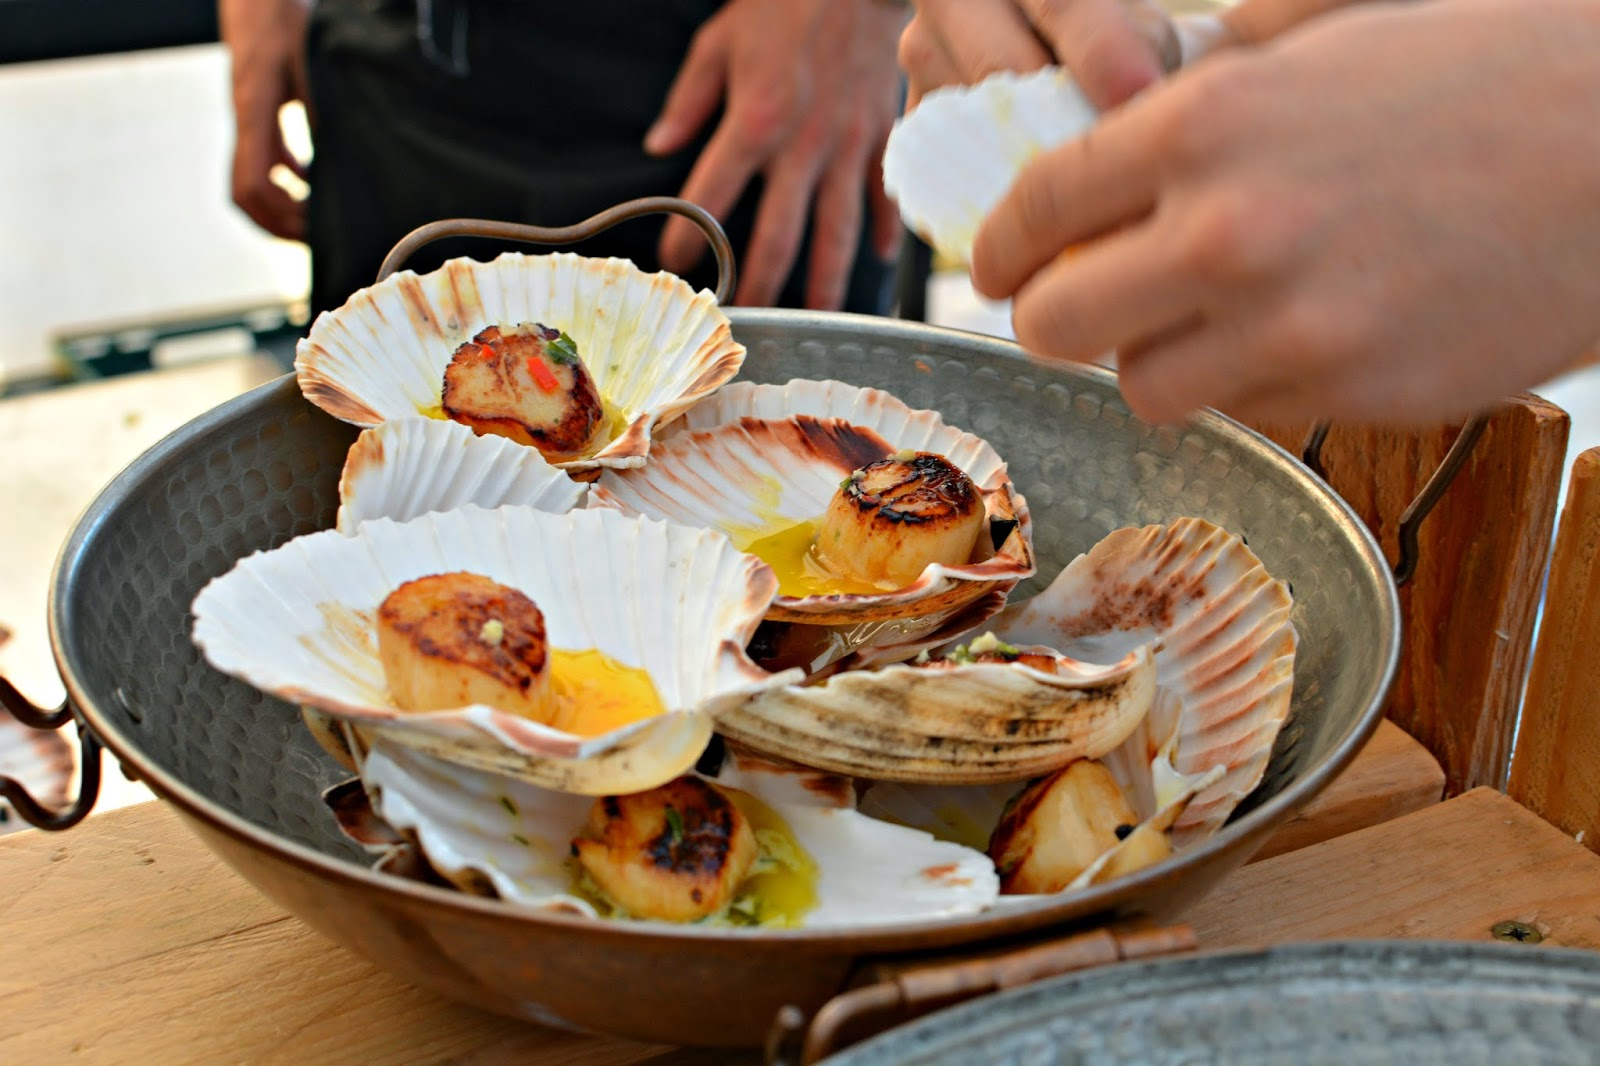 Scallops at Hell Bay Hotel Crab Shack on Bryher Isles of Scilly